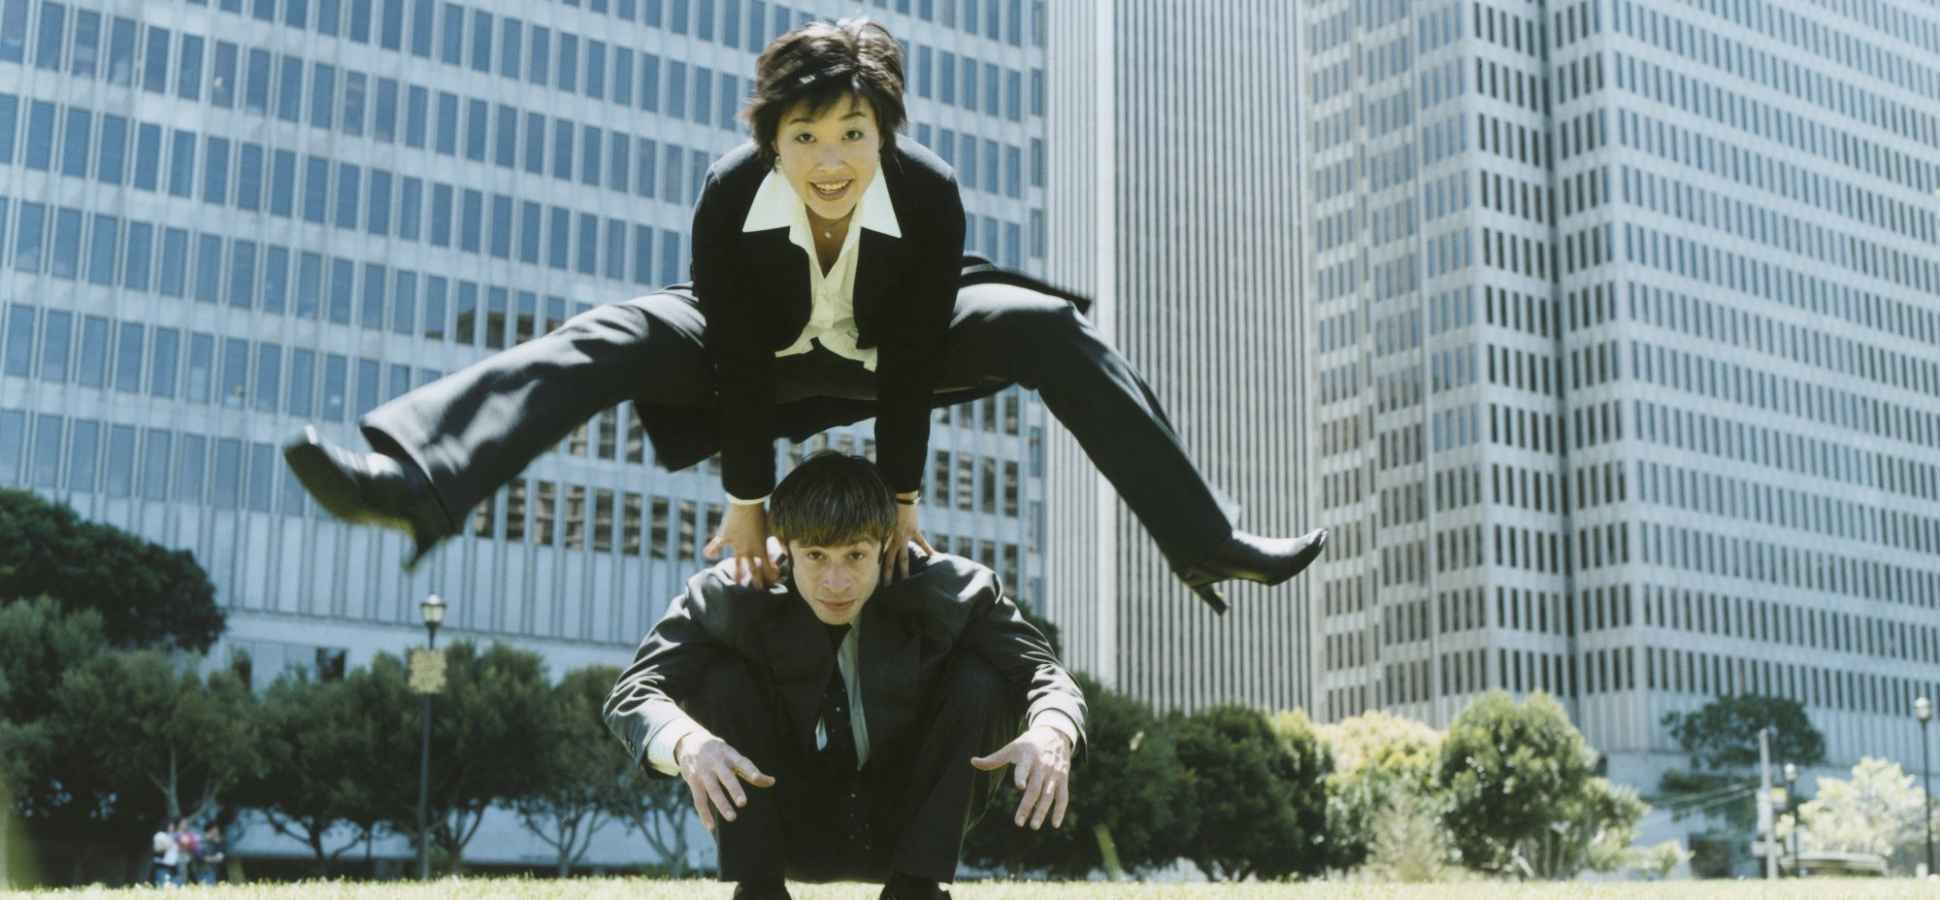 How to Jump Ahead of Other Job Applicants